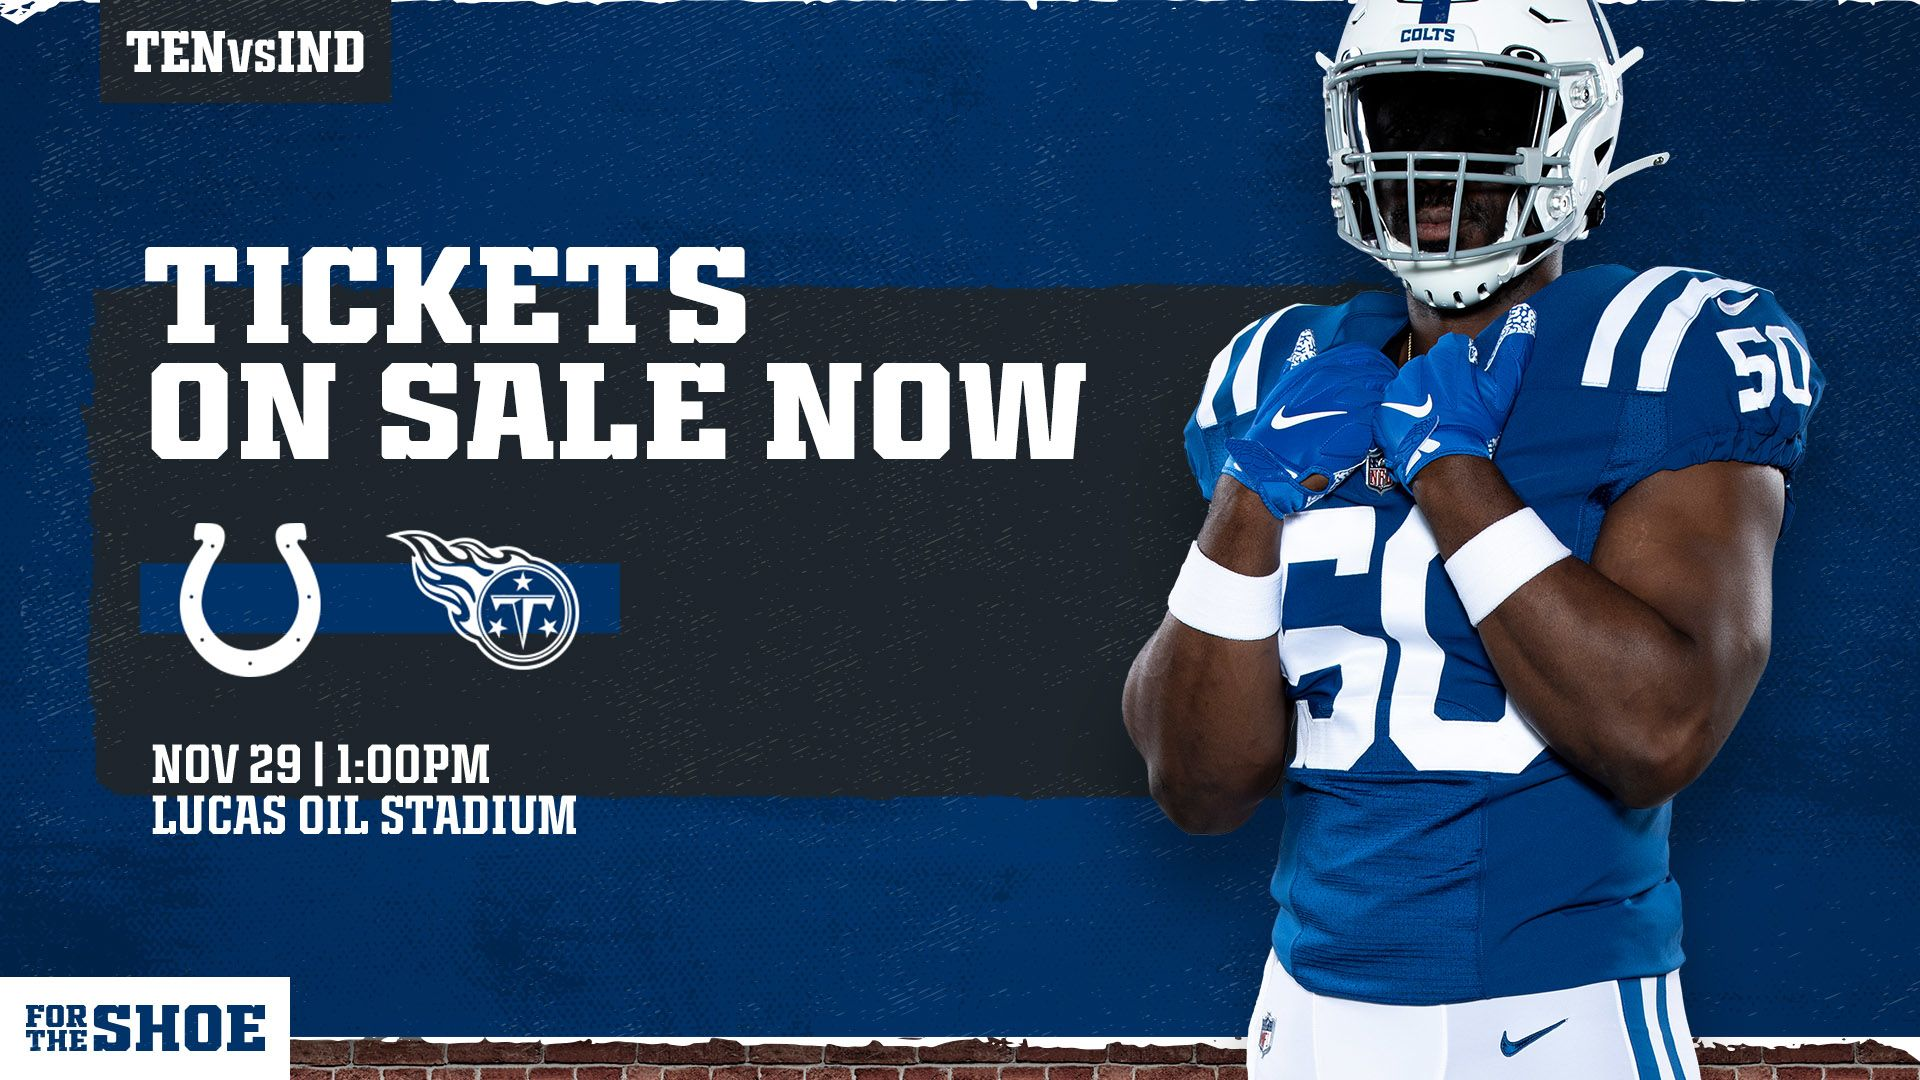 JOIN US AT LUCAS OIL STADIUM ON NOV. 29TH